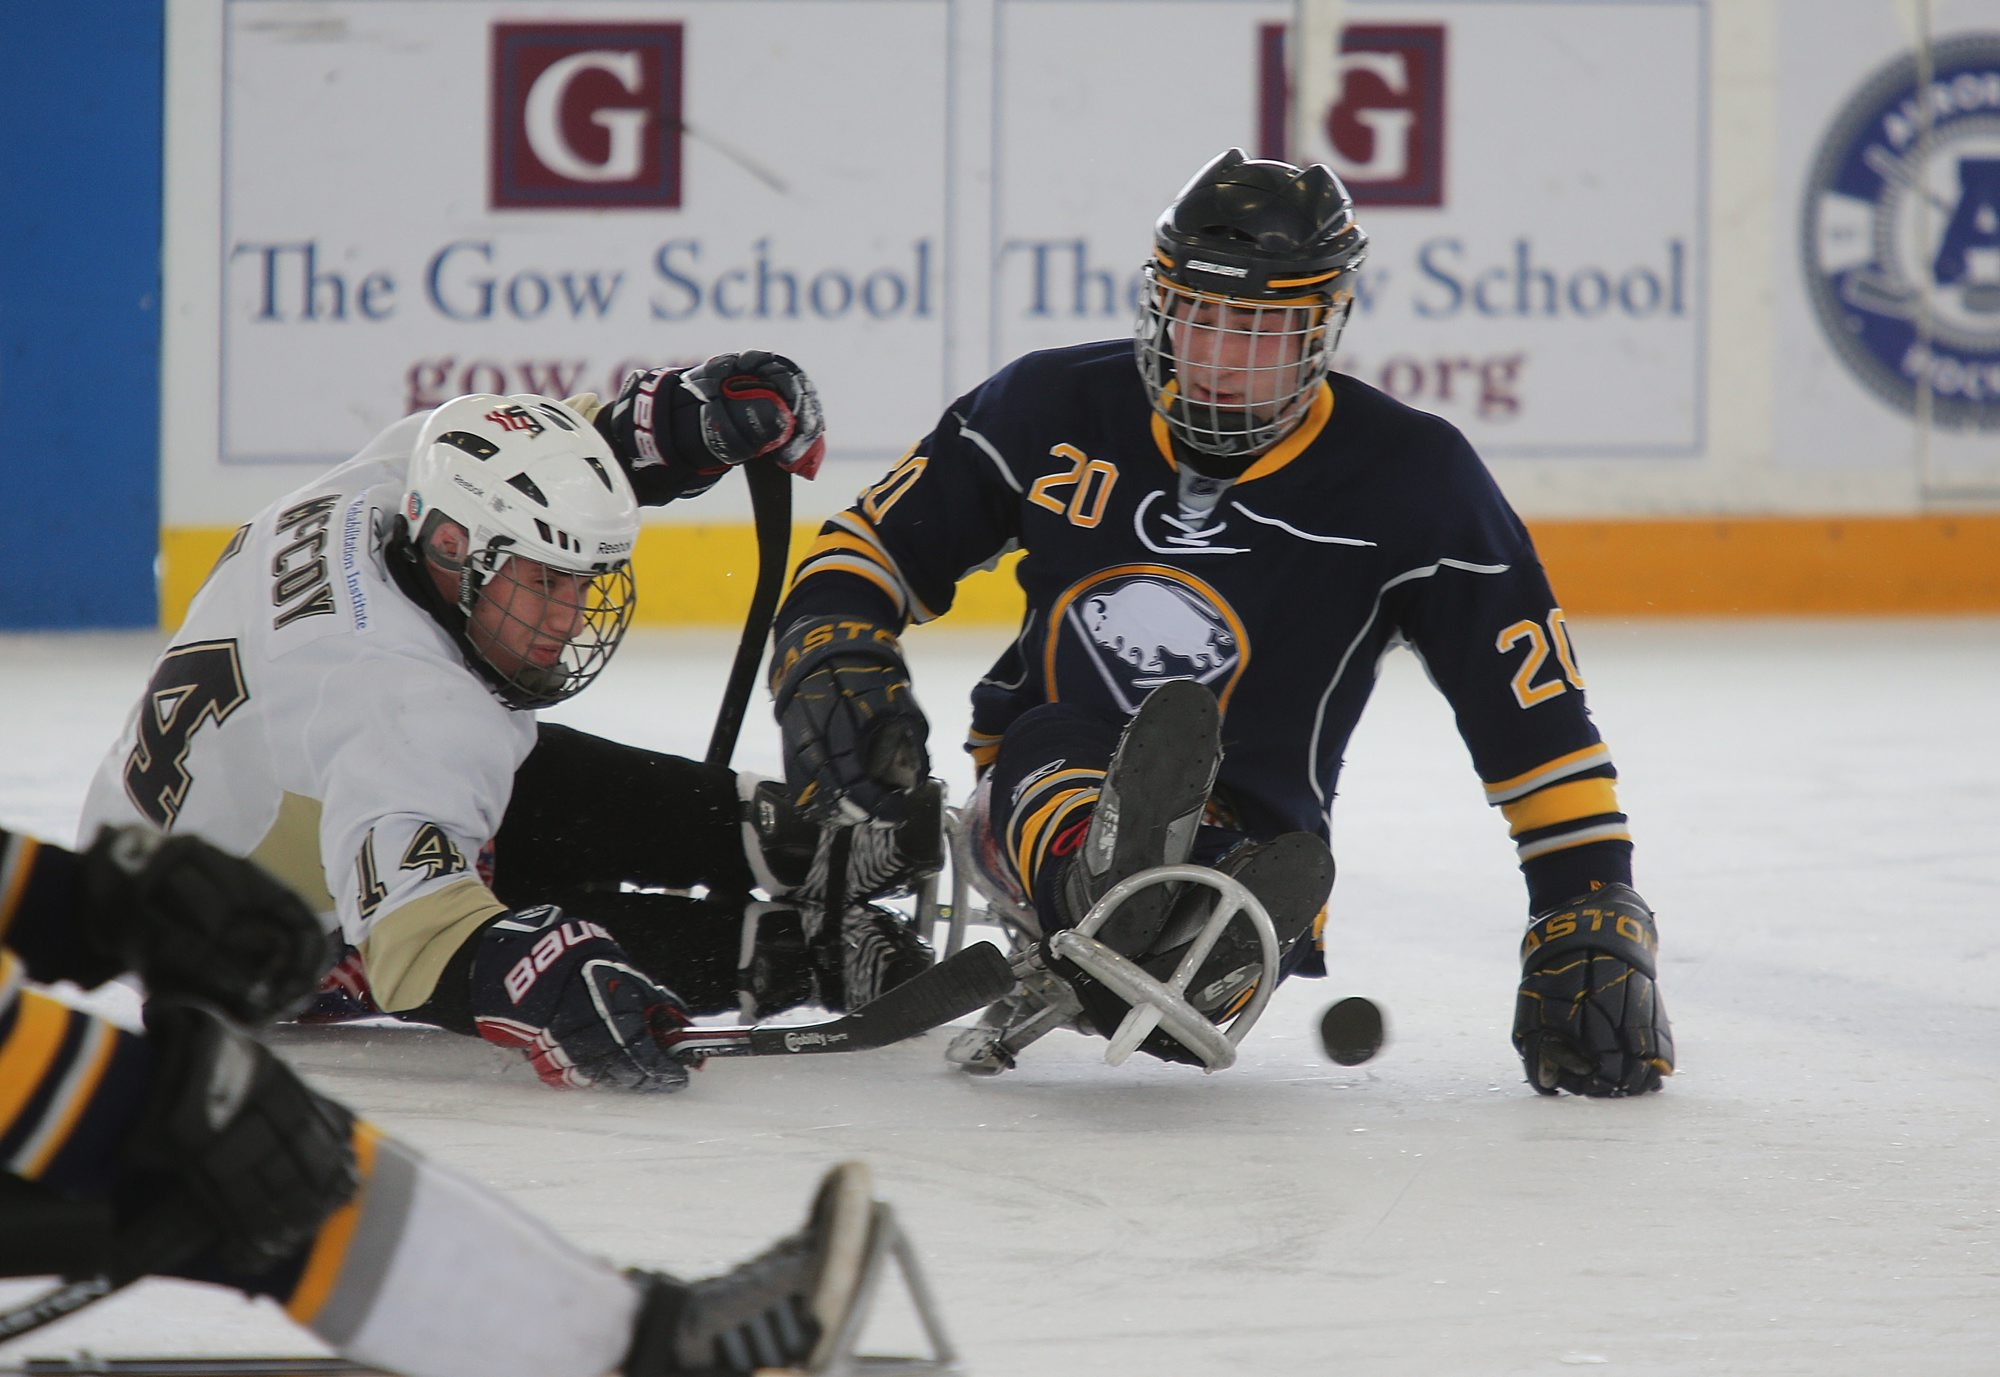 Buffalo sled hockey player Adam Page, of Lancaster, right, battles Pittsburgh player Dan McCoy, of Cheswick, Pa., for the puck Sunday at the Healthy Zone Ice Rink in East Aurora. The Sabres-sponsored team won, 7-3. Page – who scored six of his team's goals – also made the 2014 U.S. Paralympic Sled Hockey team.